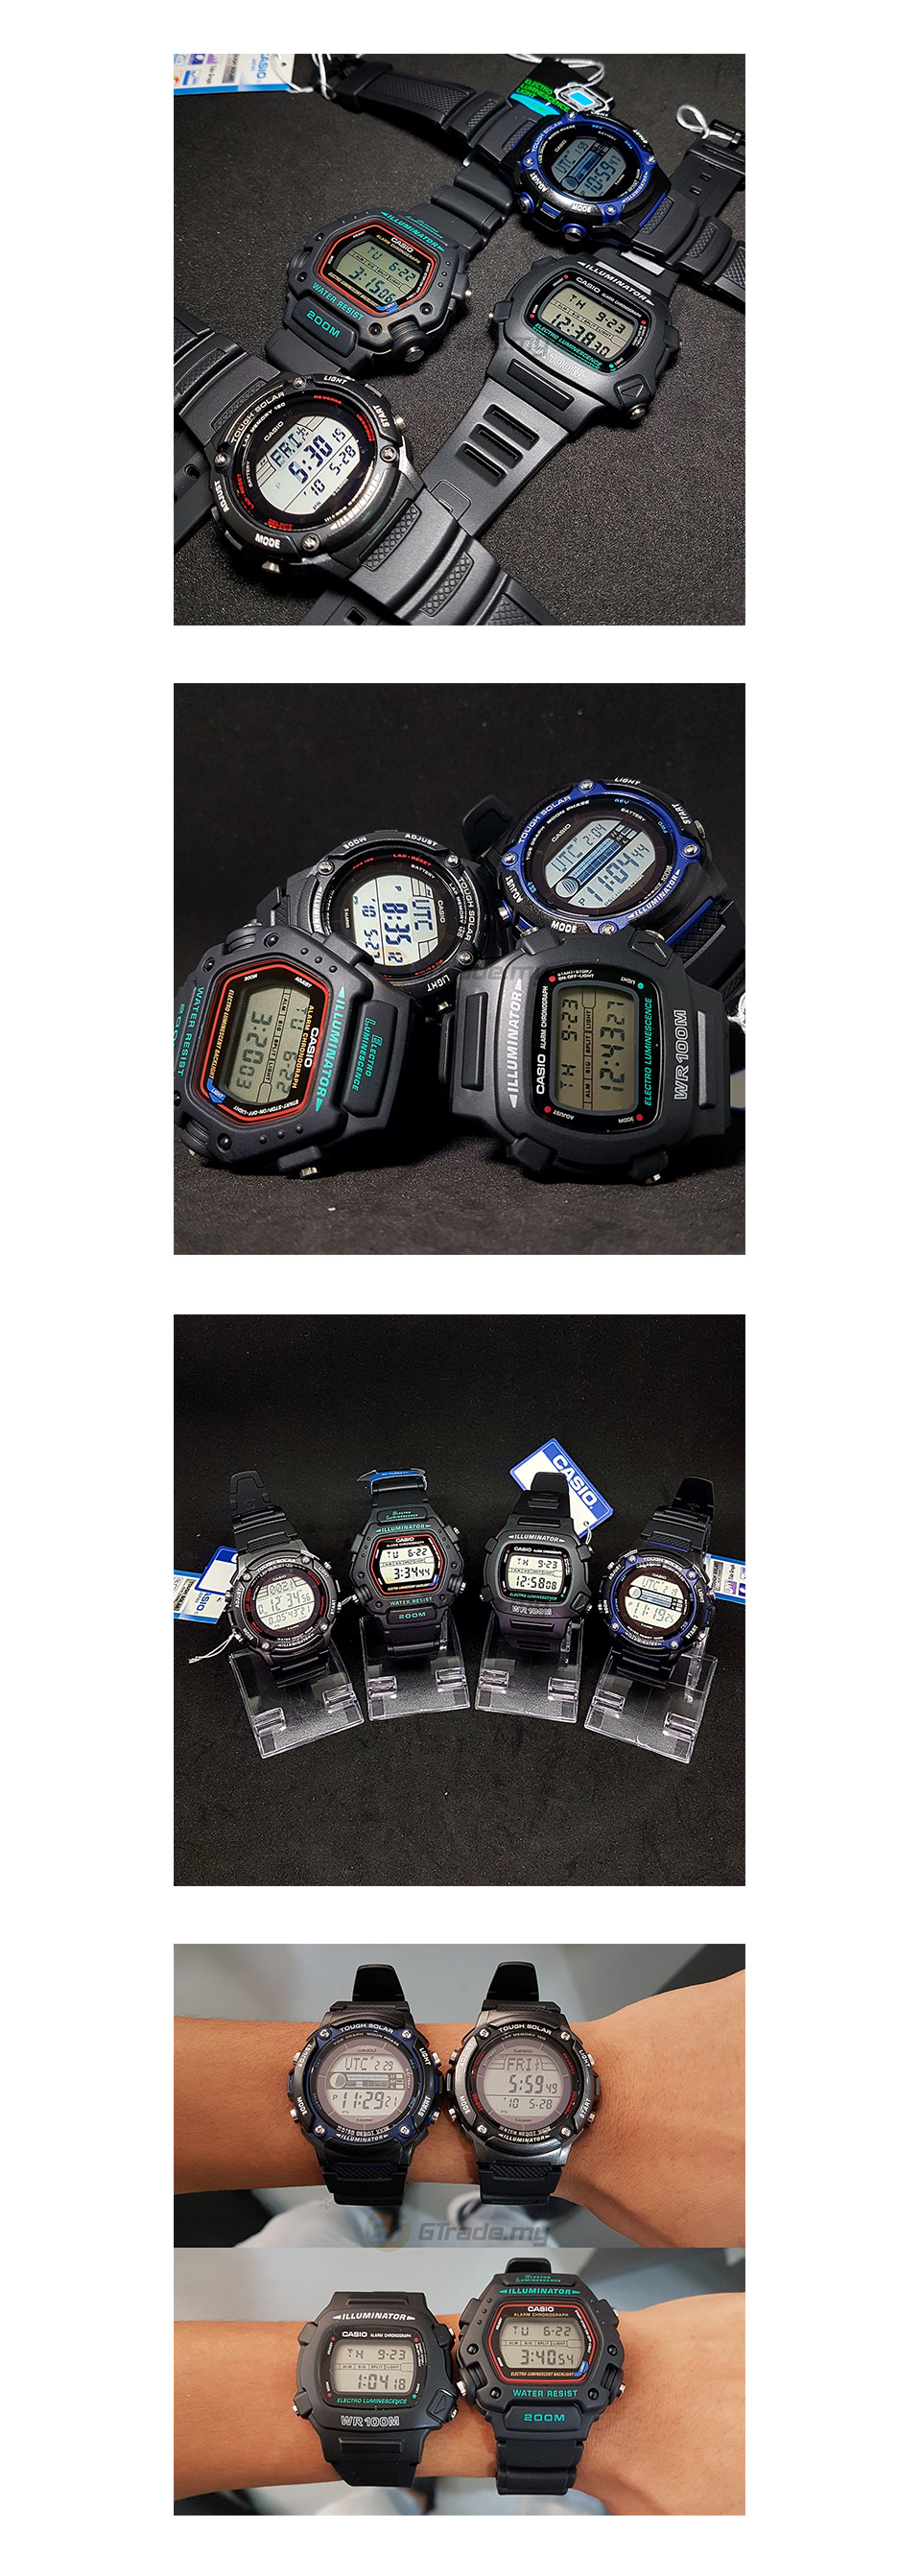 casio-digital-watch-alarm-100m-w-740-1v-p